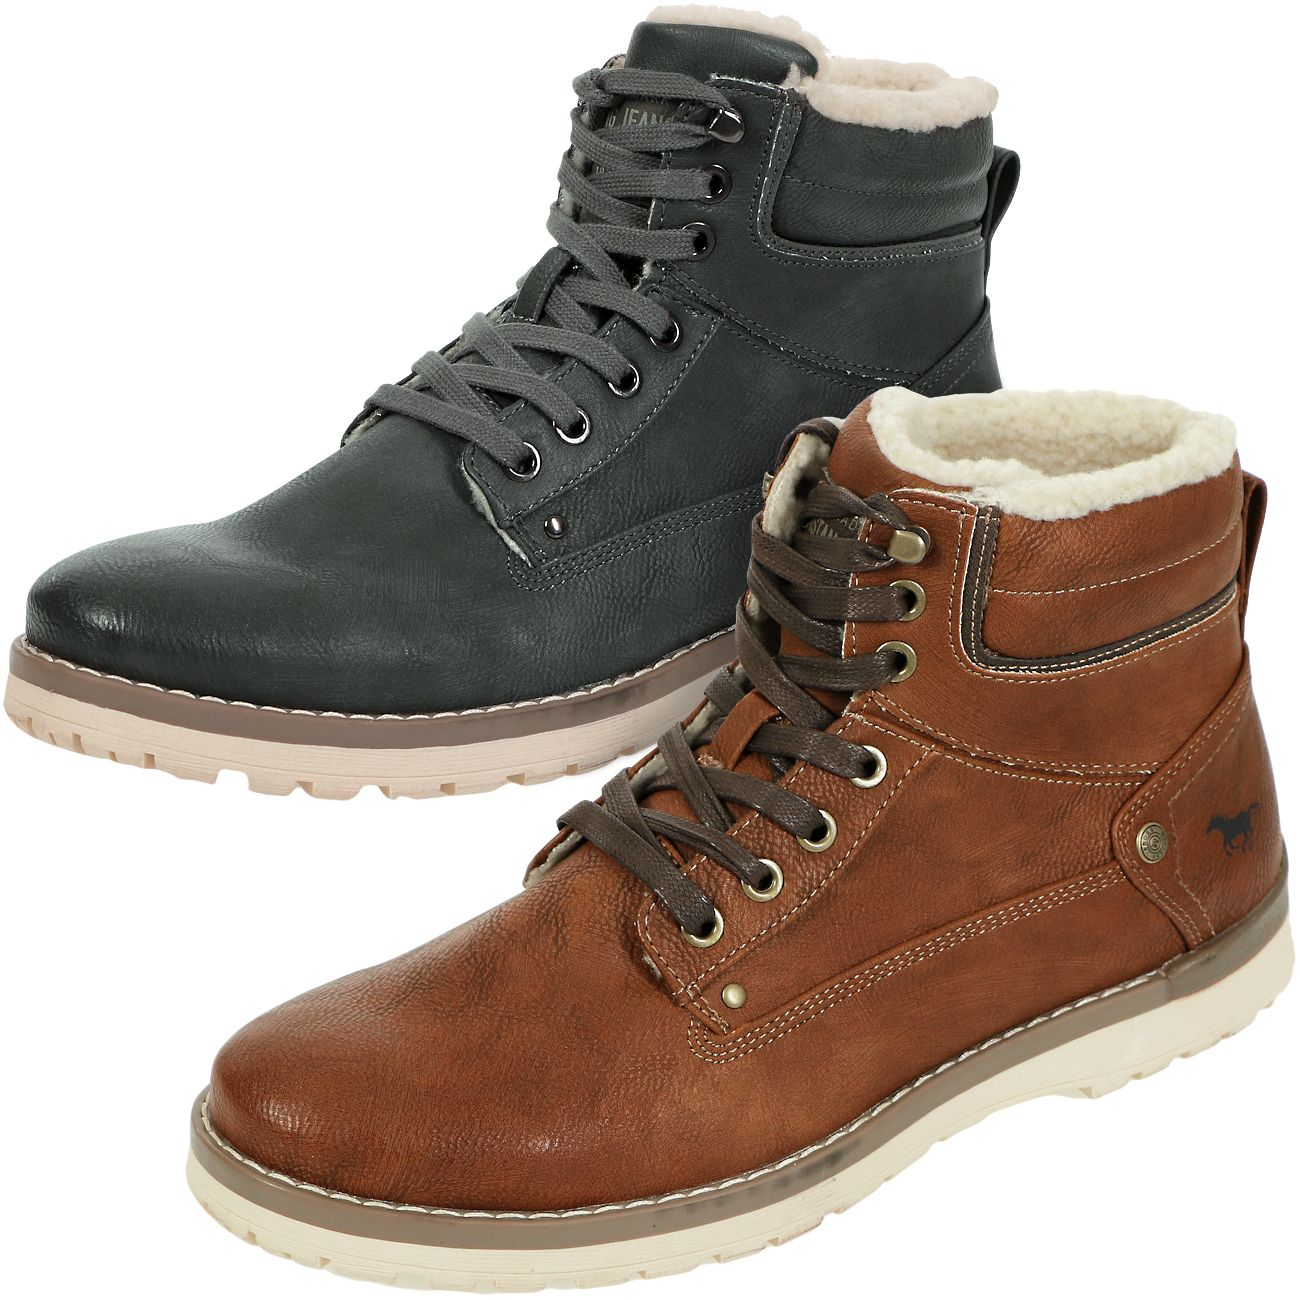 Details about Mustang Men's Winter Shoes Lined Boots Winter Boots Boots 4092 609 show original title